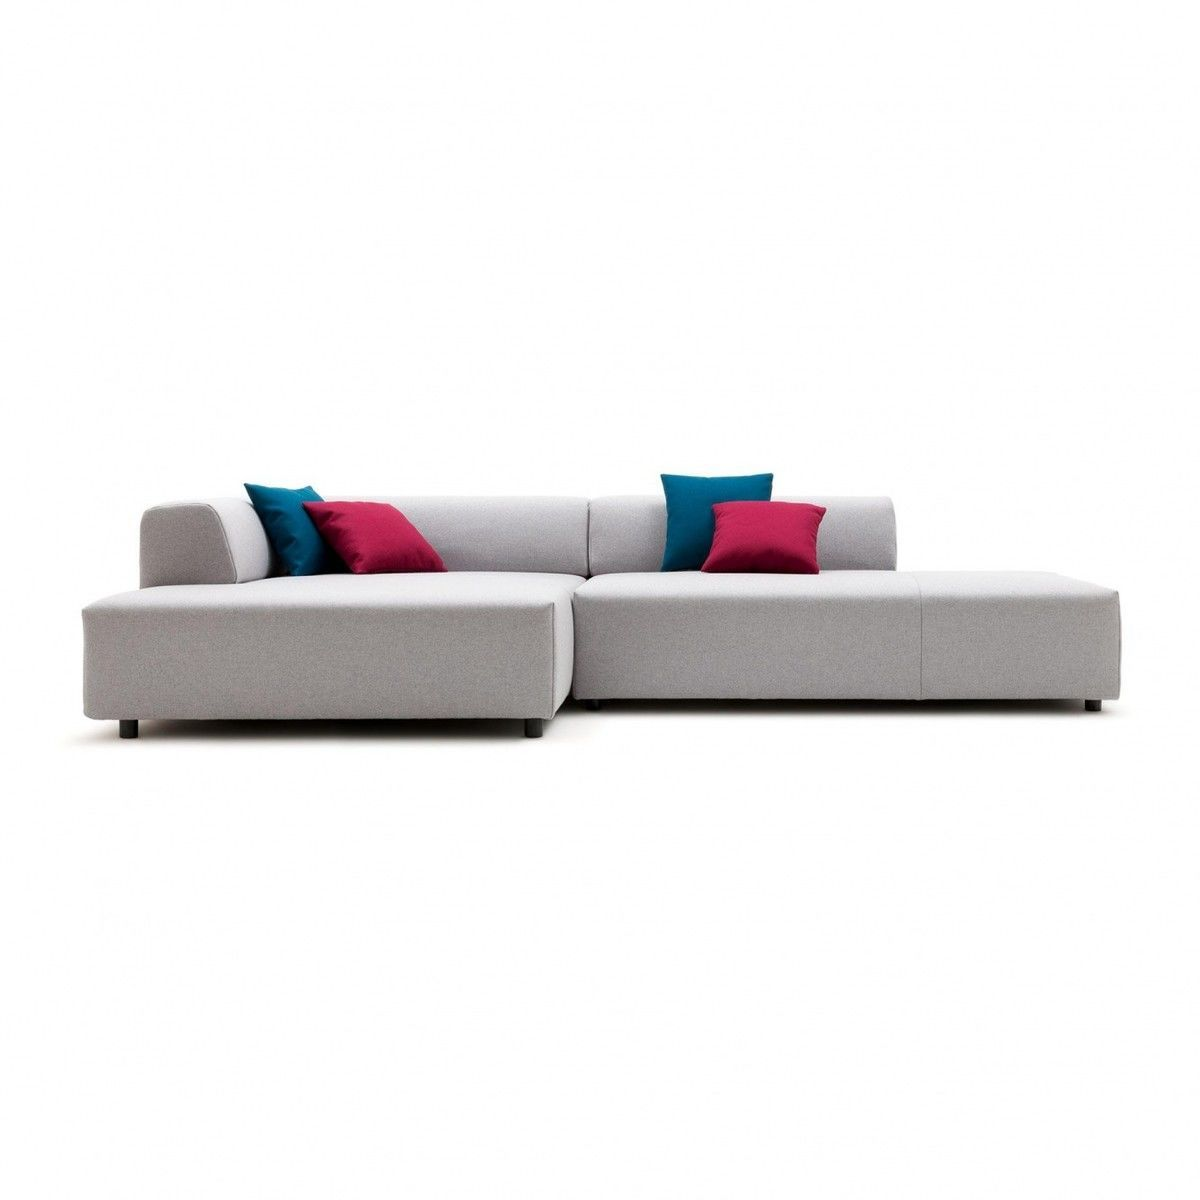 Lounge sofa  freistil 184 Lounge Sofa | freistil Rolf Benz | AmbienteDirect.com